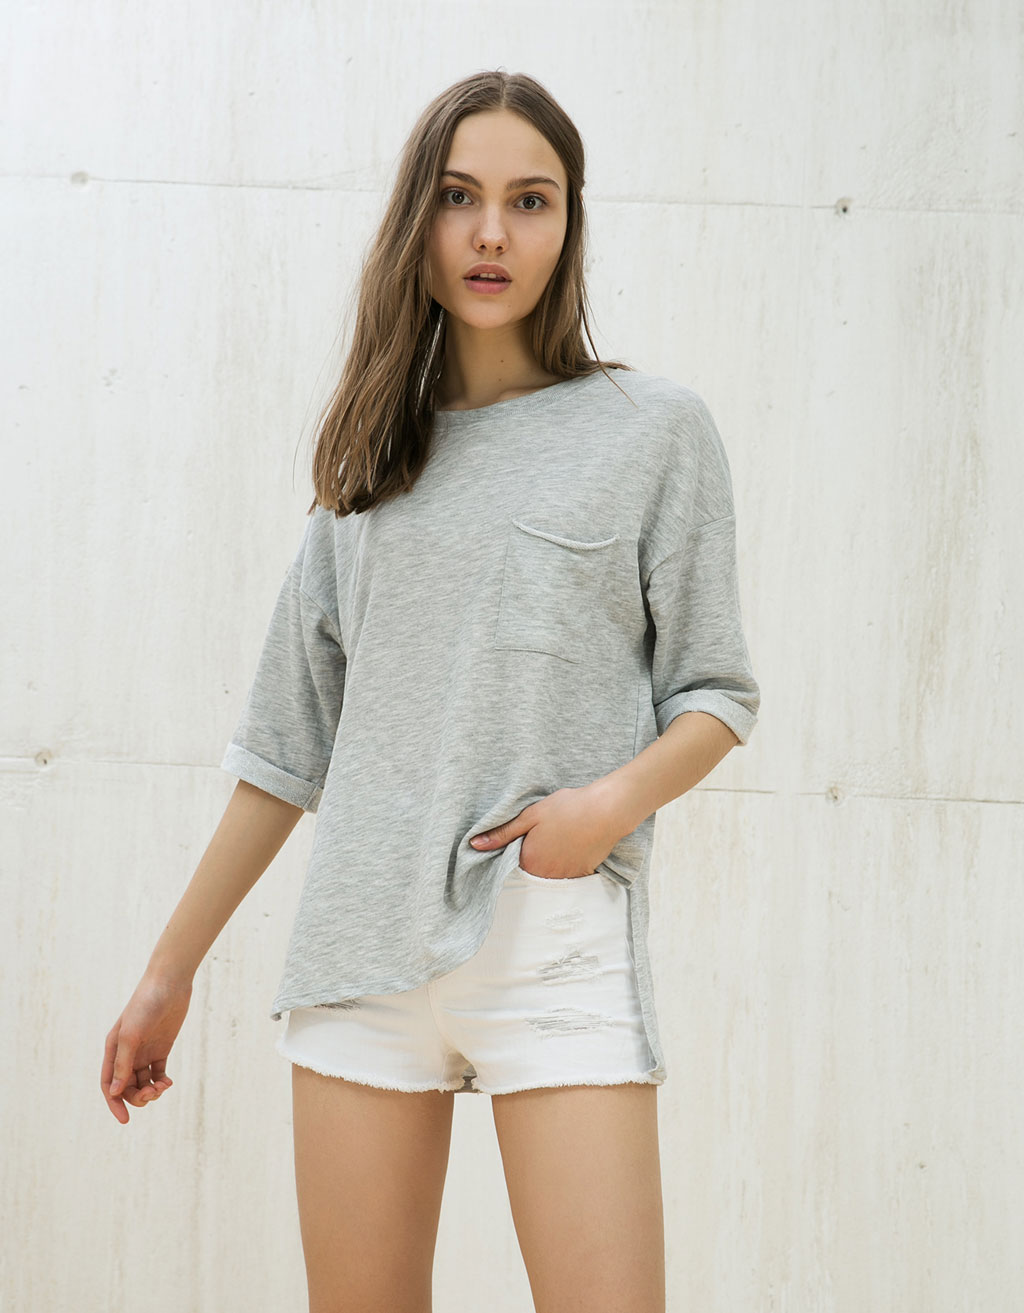 Oversized sweatshirt with short rolled up sleeves